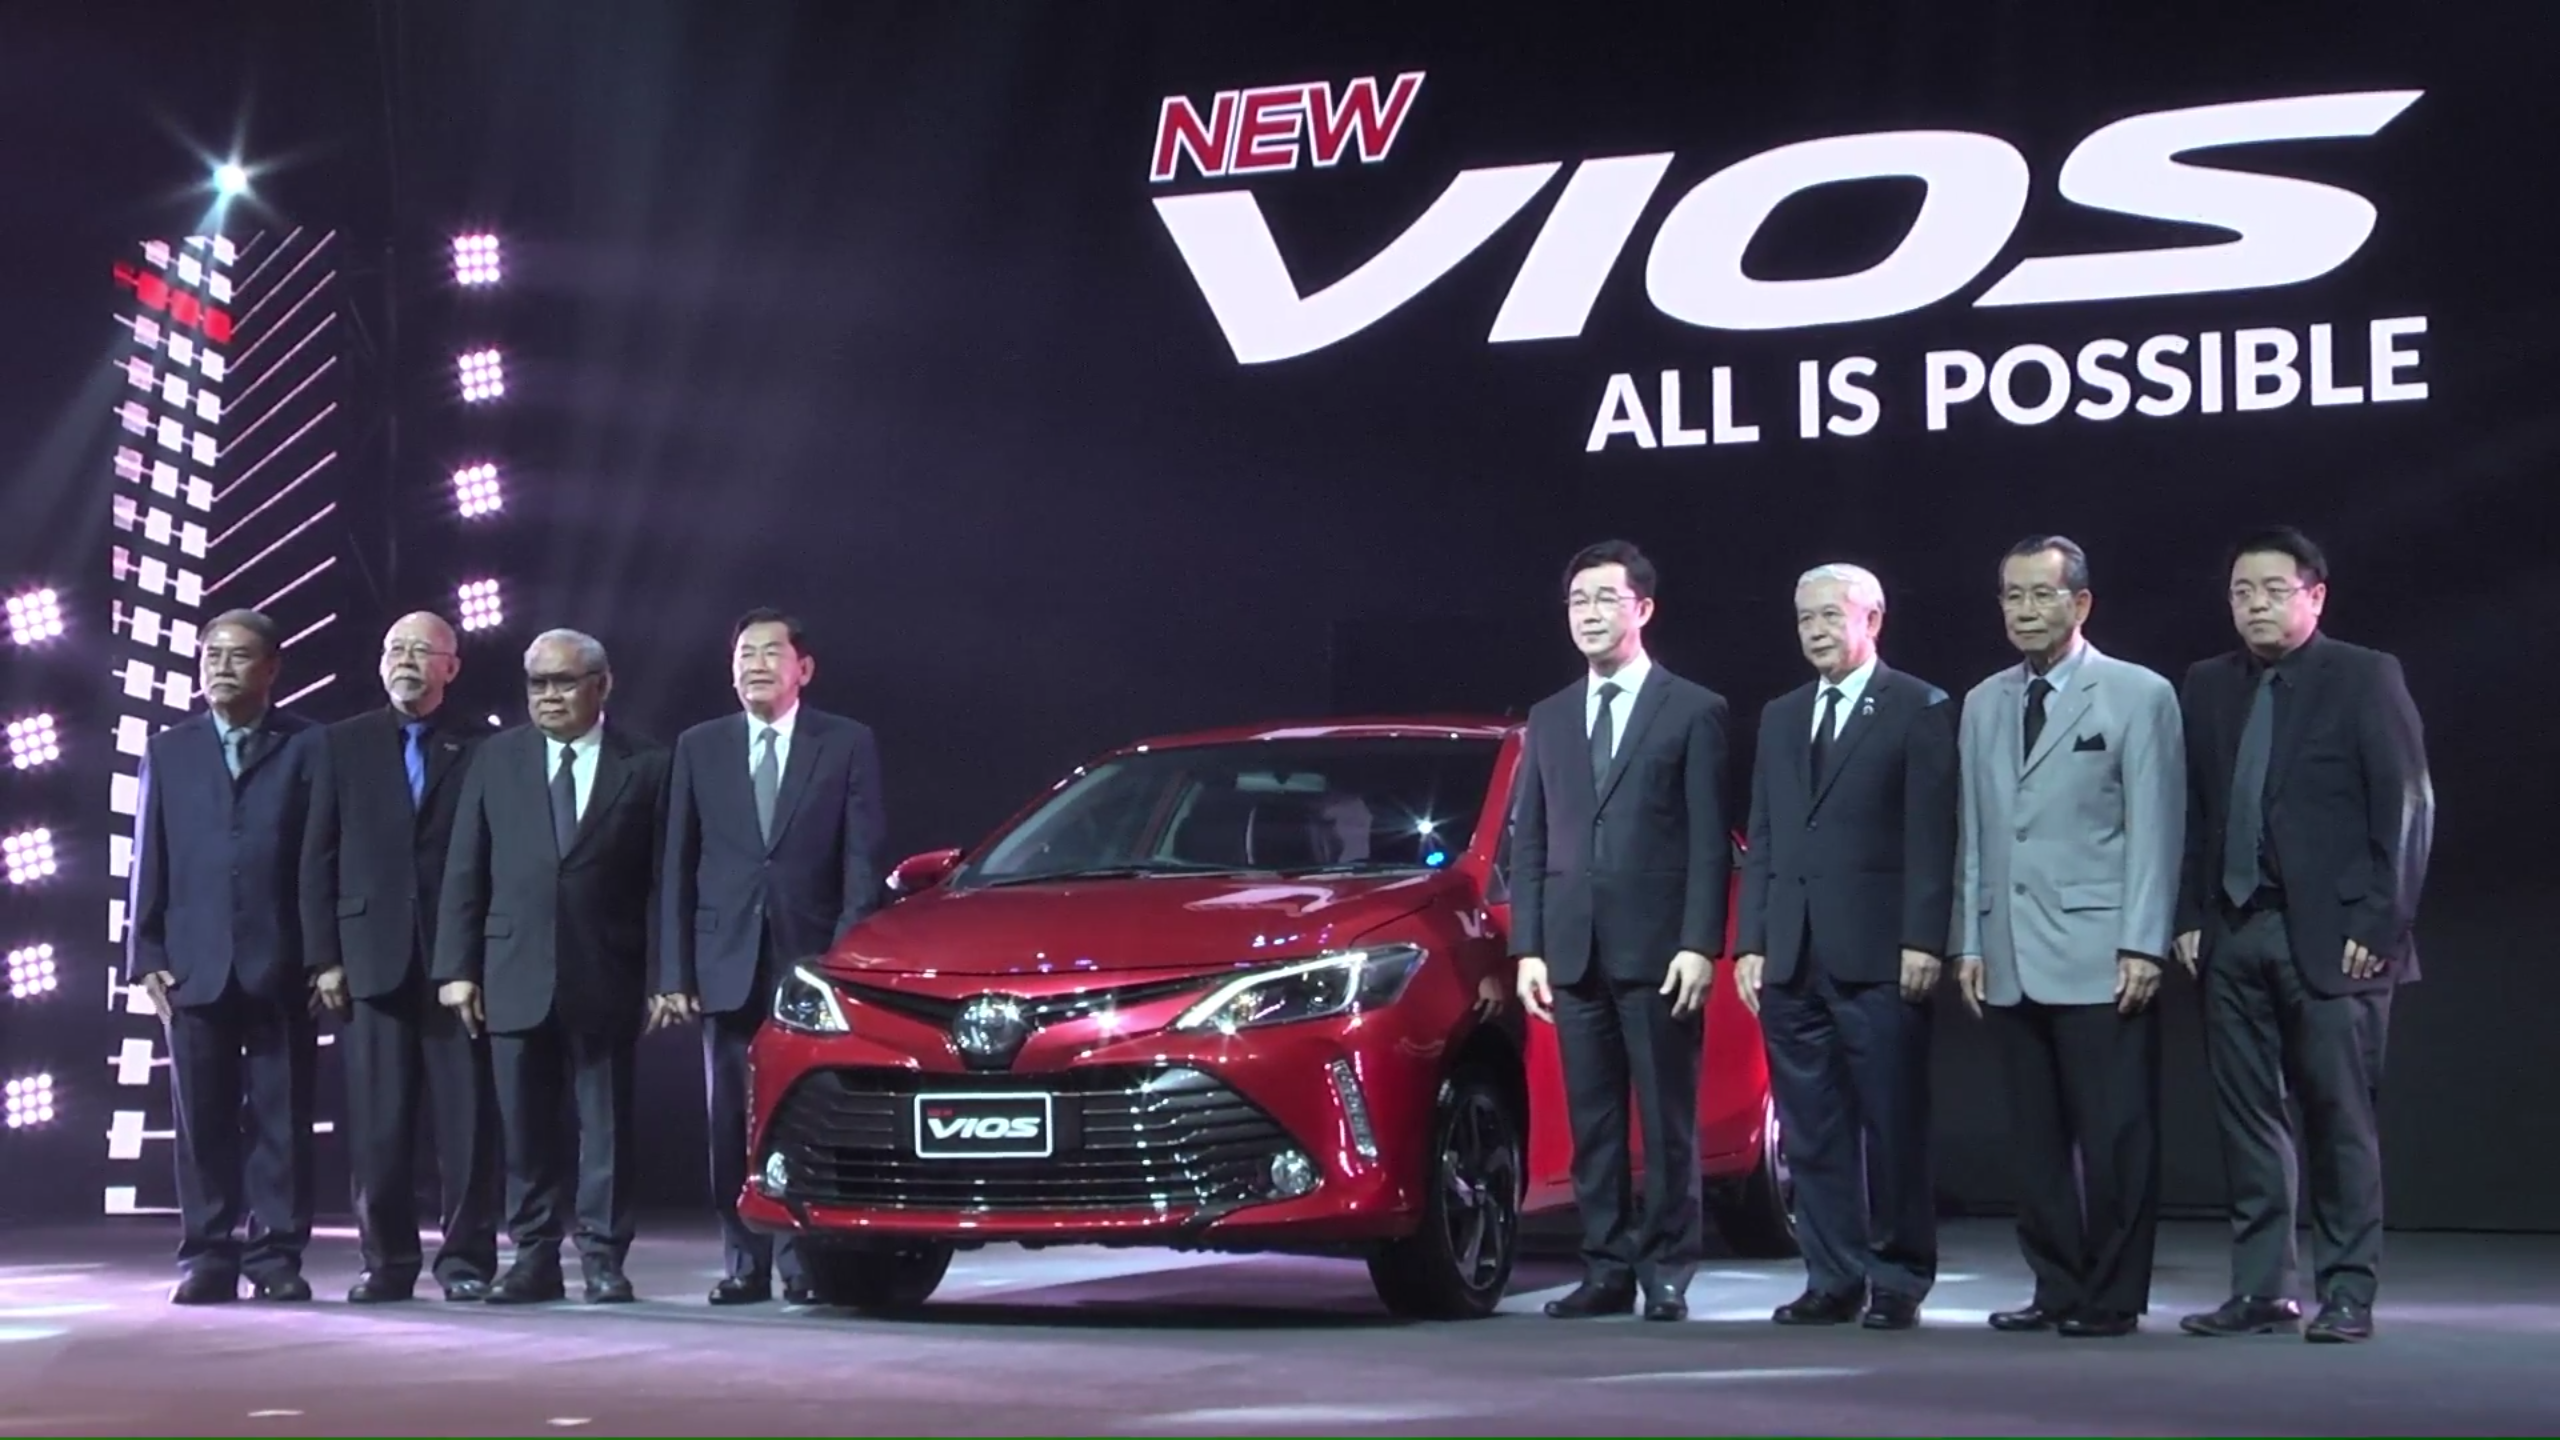 2017-Toyota-Vios-Thailand-launch-5.png